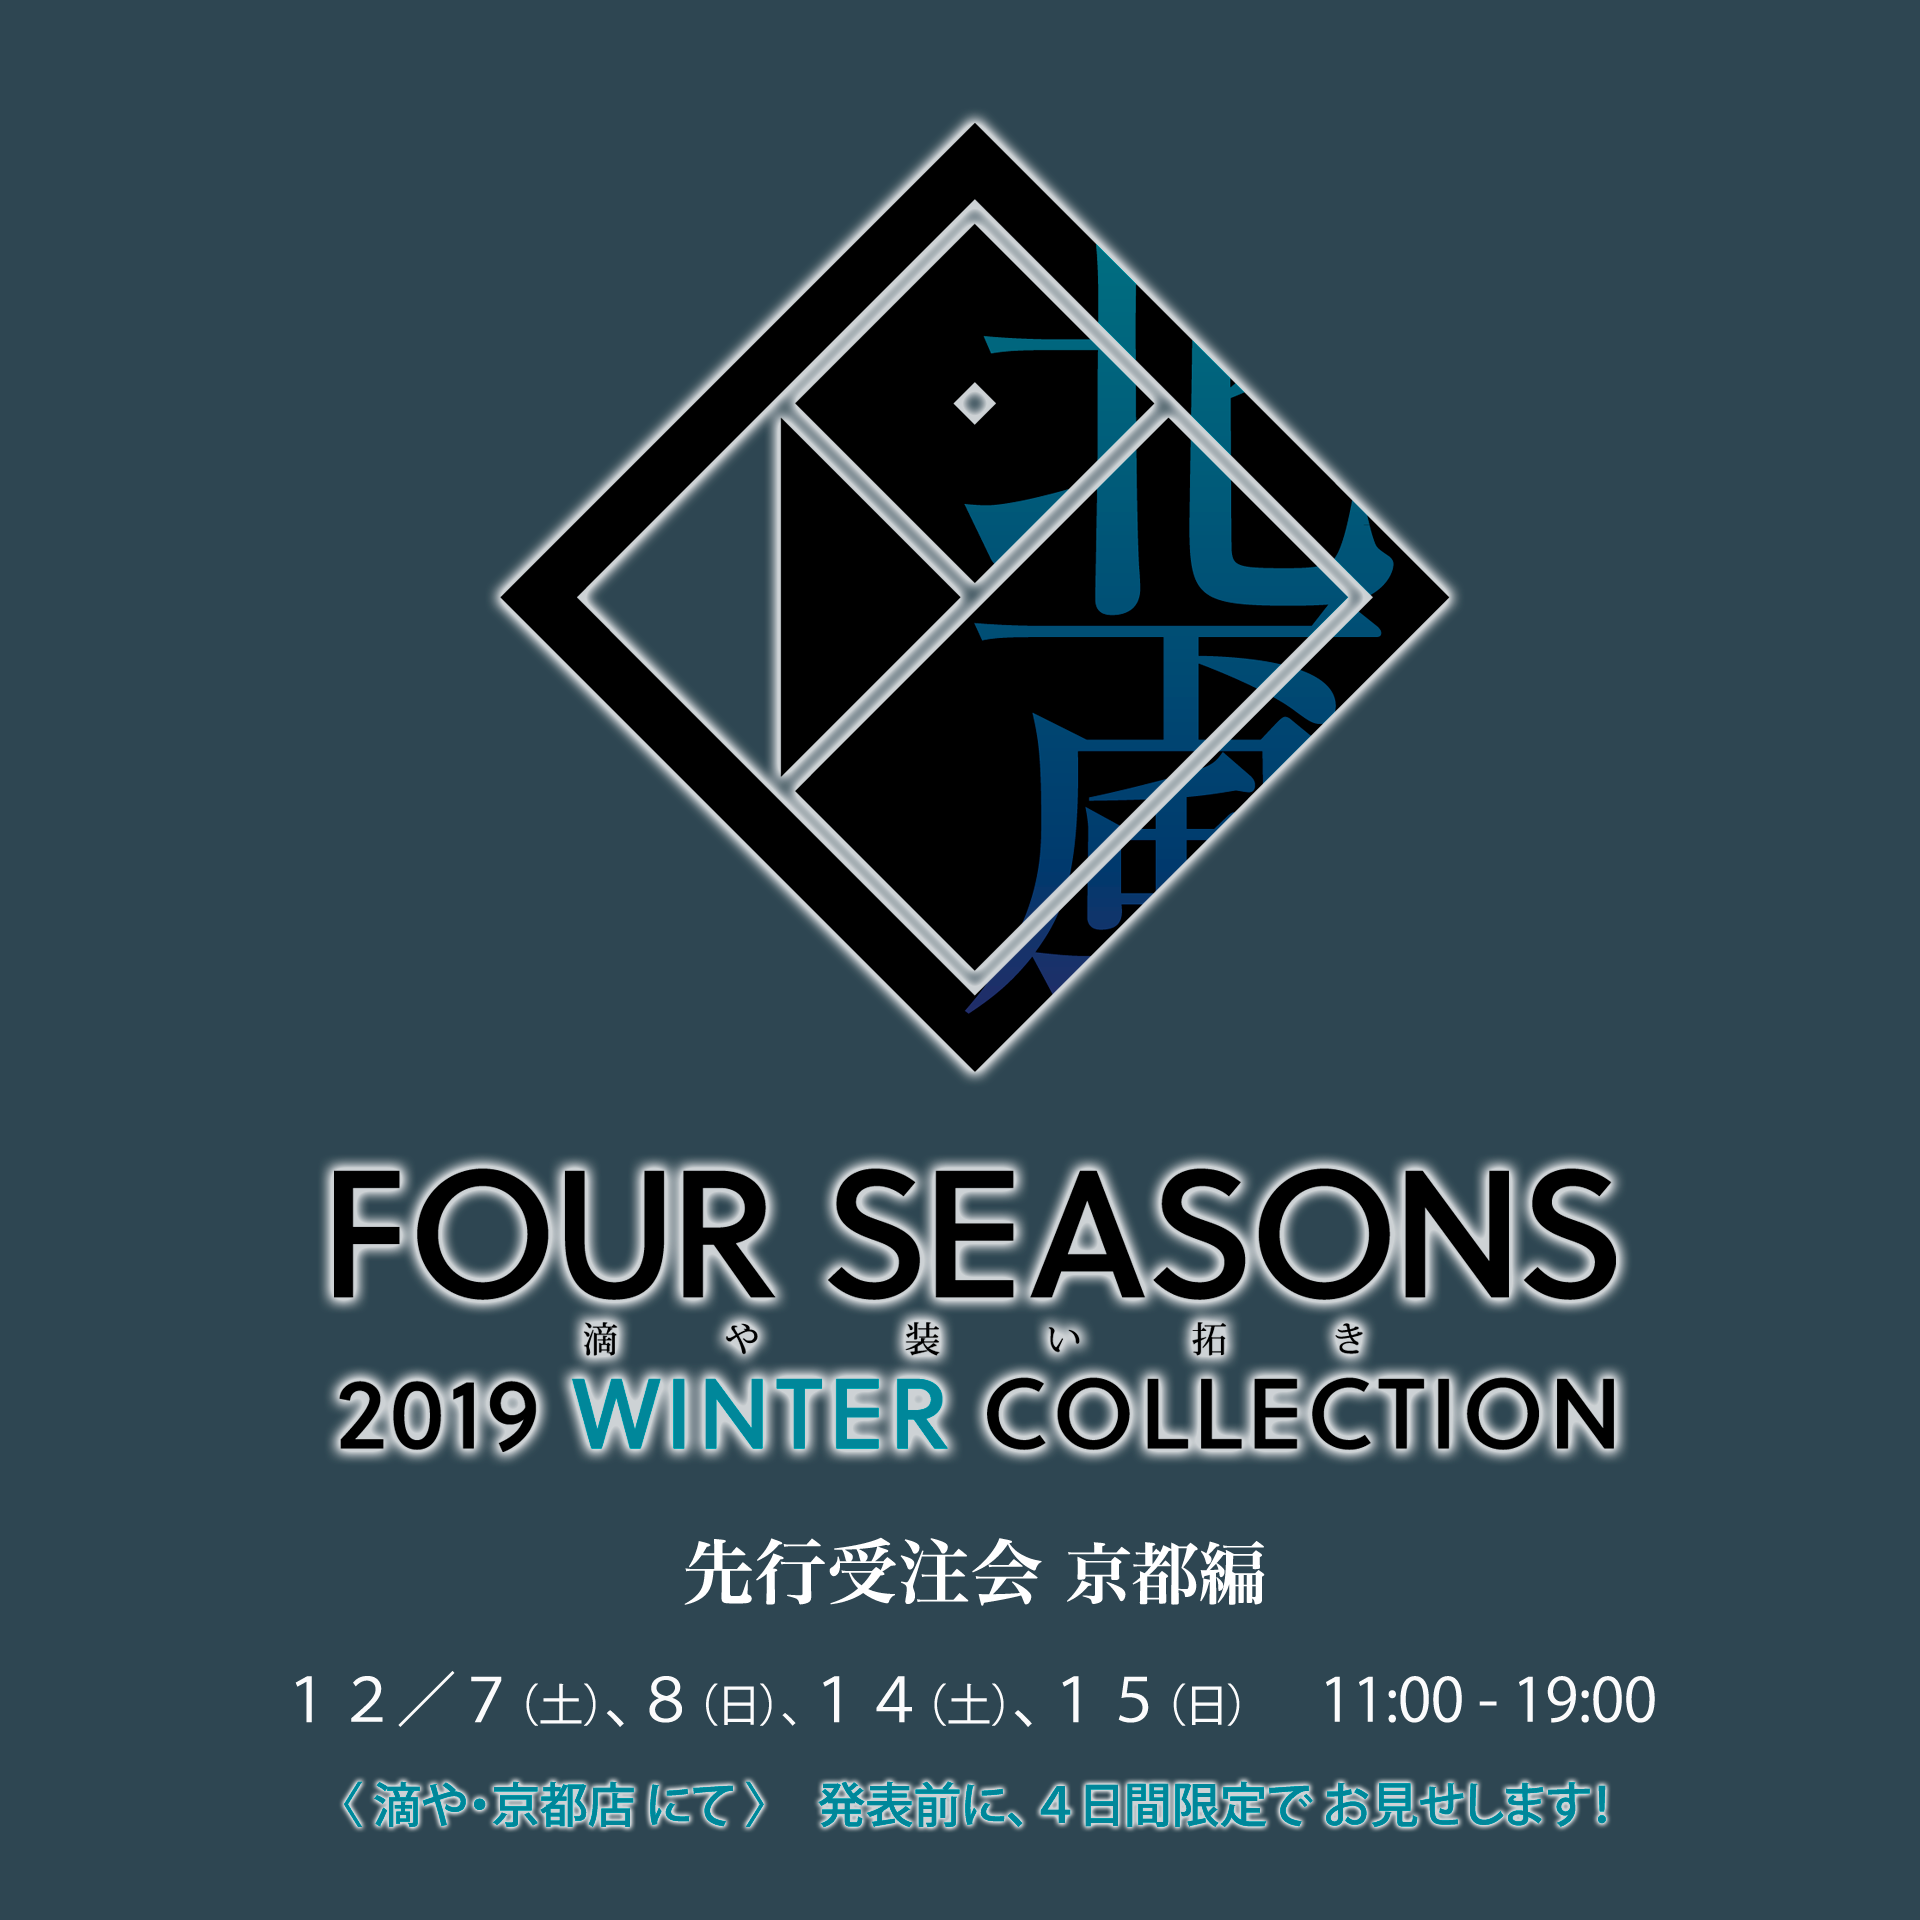 2019 WINTER COLLECTION 先行受注会